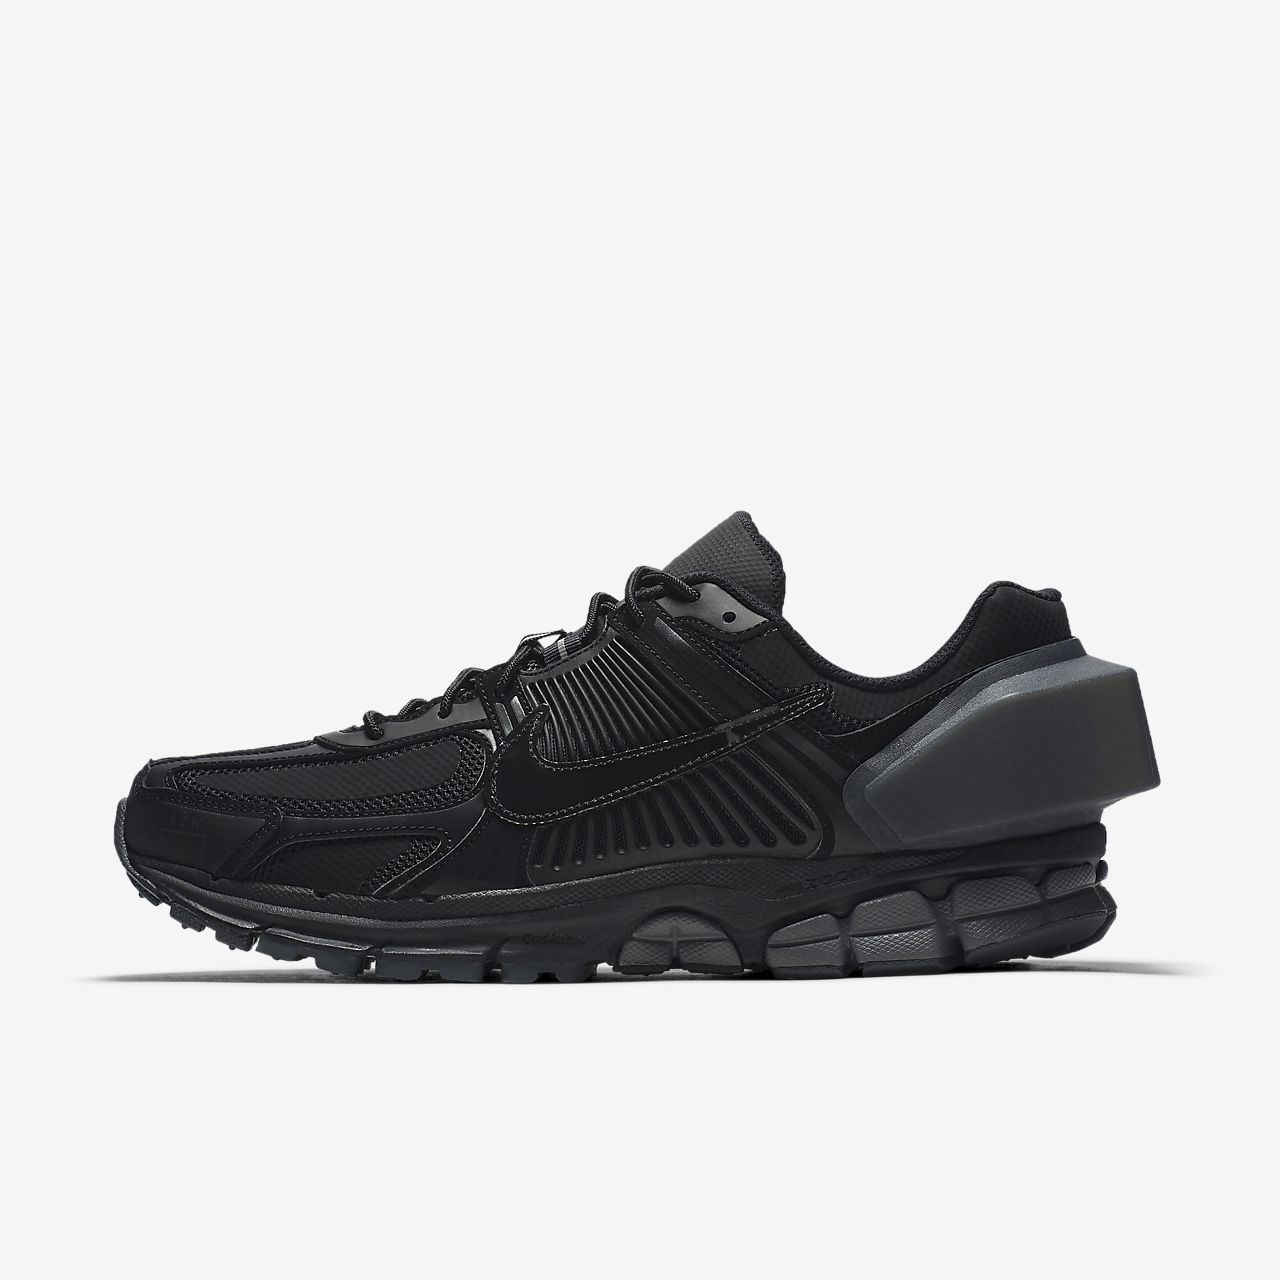 newest 9f259 d7359 ... Nike x A-COLD-WALL Zoom Vomero +5 Shoe